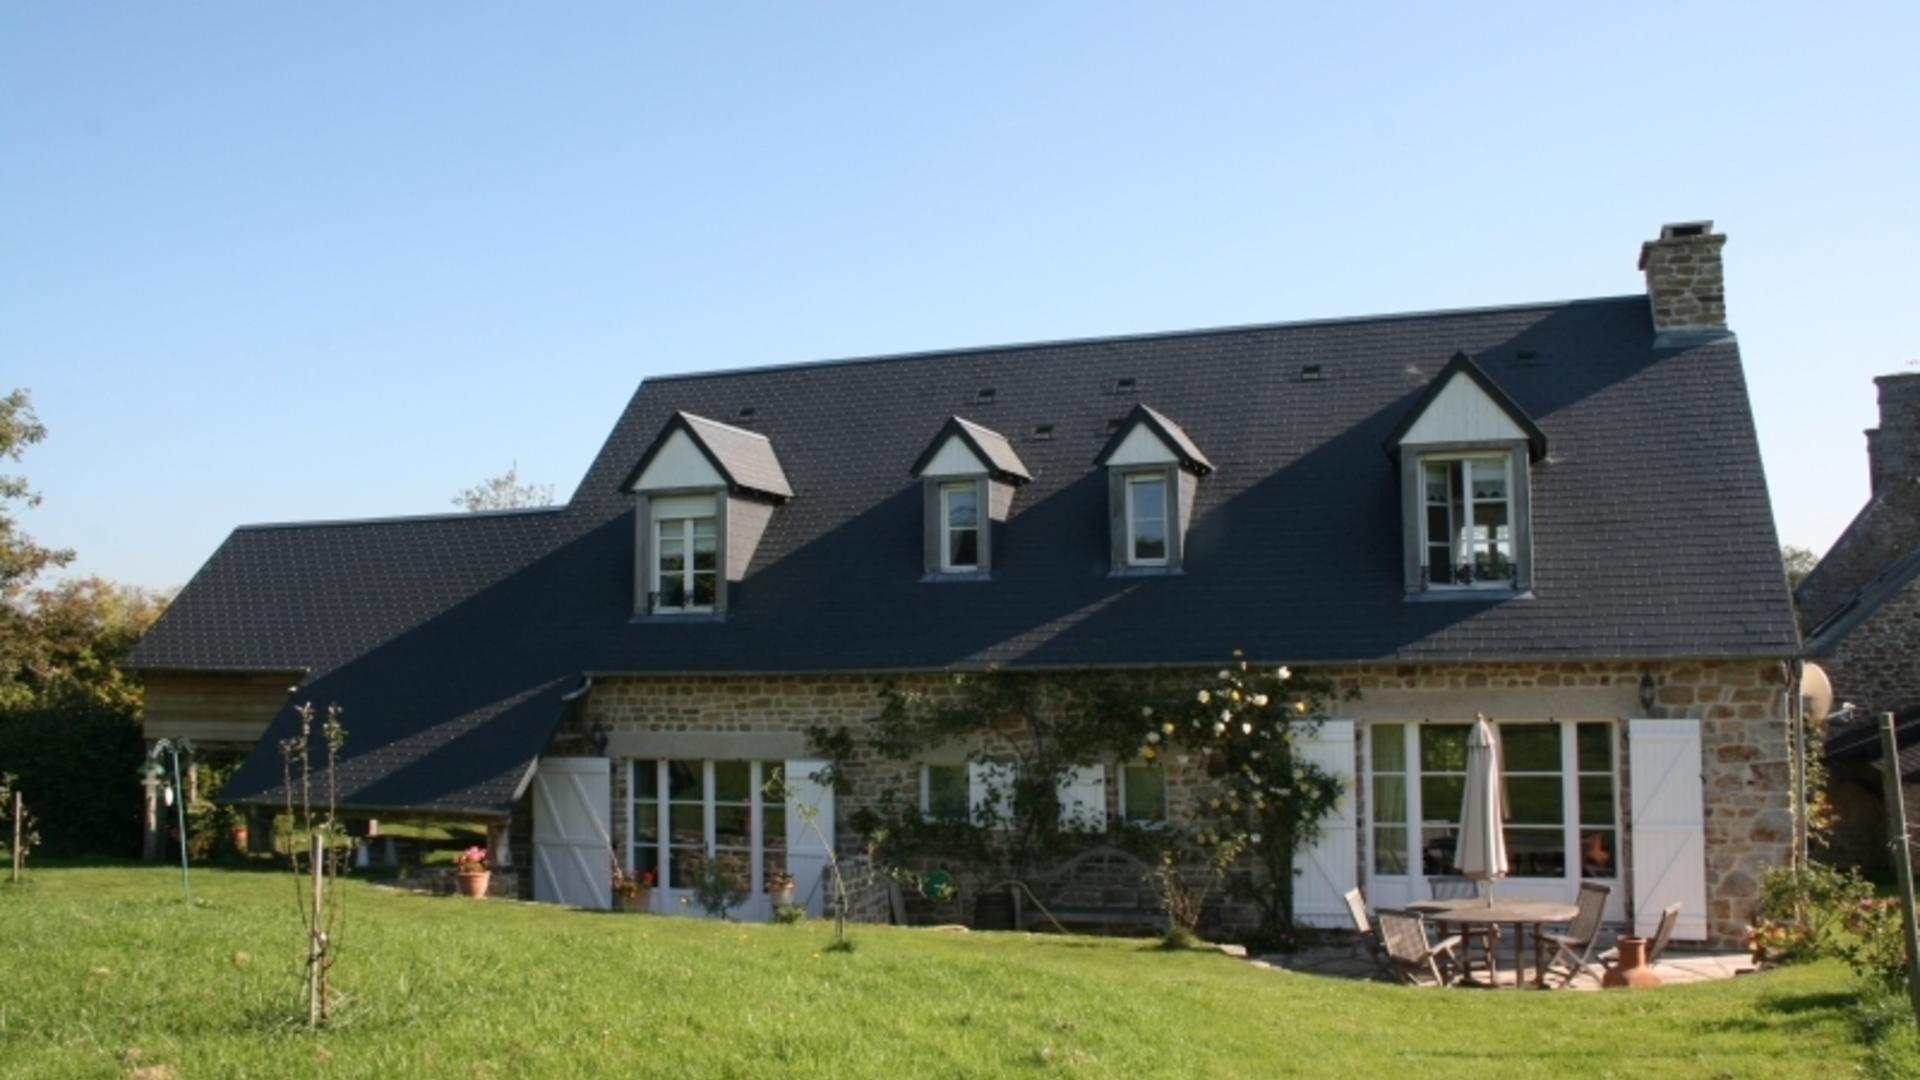 3 Bedroom Private cottage in Normandy, France